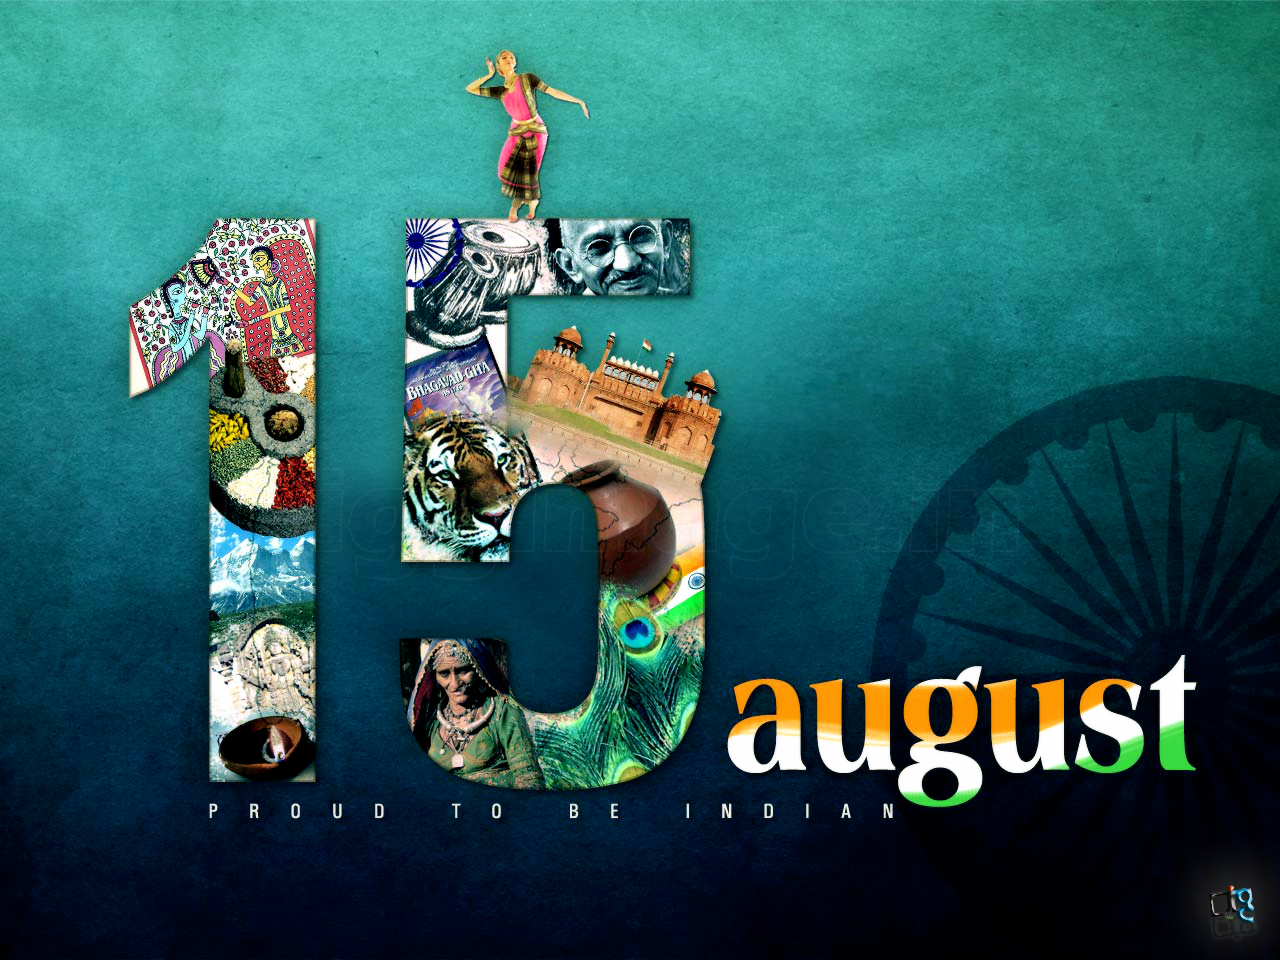 http://3.bp.blogspot.com/-54apsDNM2Lc/UAqBI237NZI/AAAAAAAABY8/UYk3IiBjvvQ/s1600/15-august-india-independence-day-wallpaper%20proud%20to%20be%20an%20indian.JPG